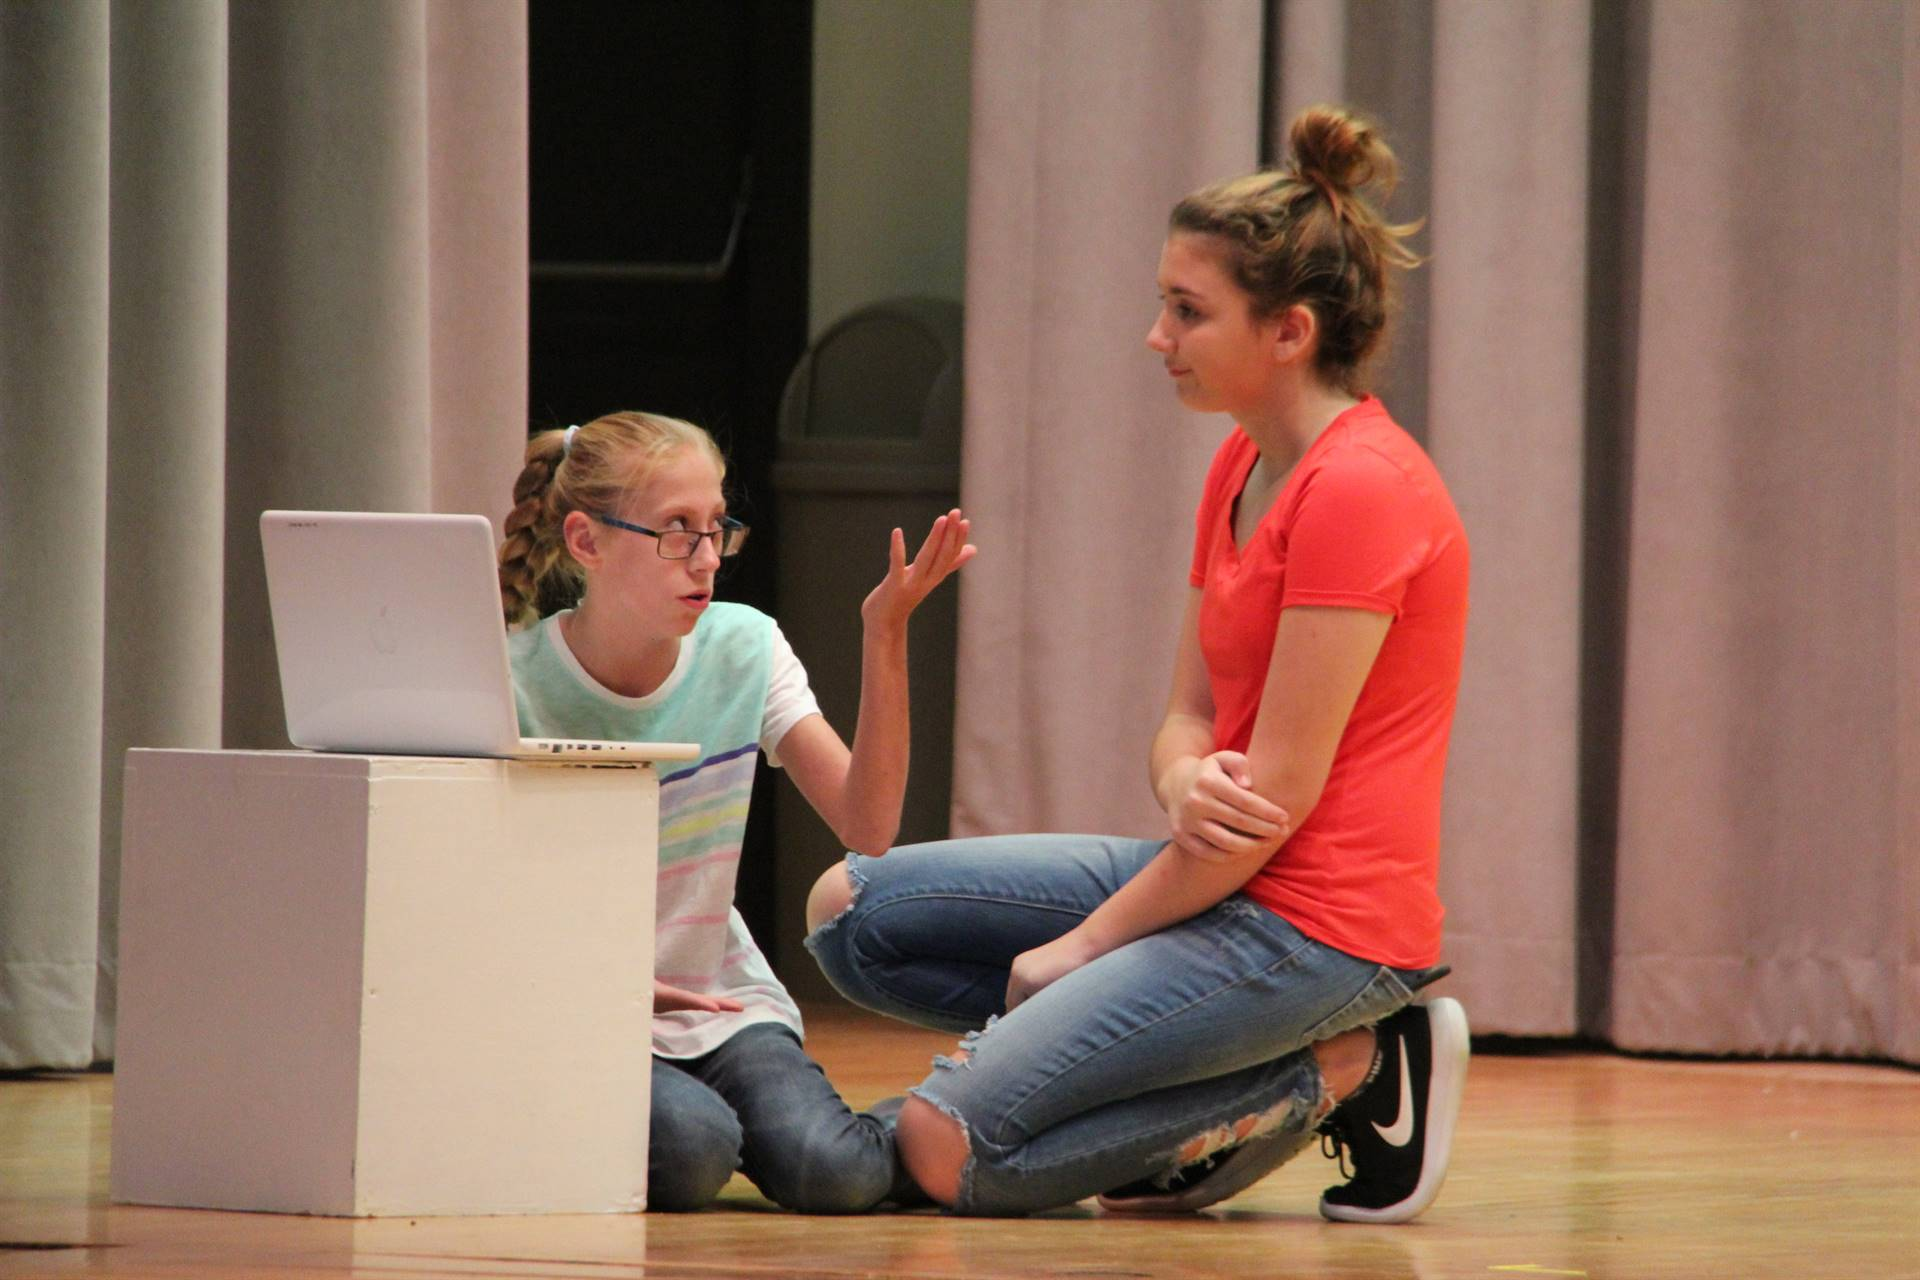 female students in scene involving a laptop and emails